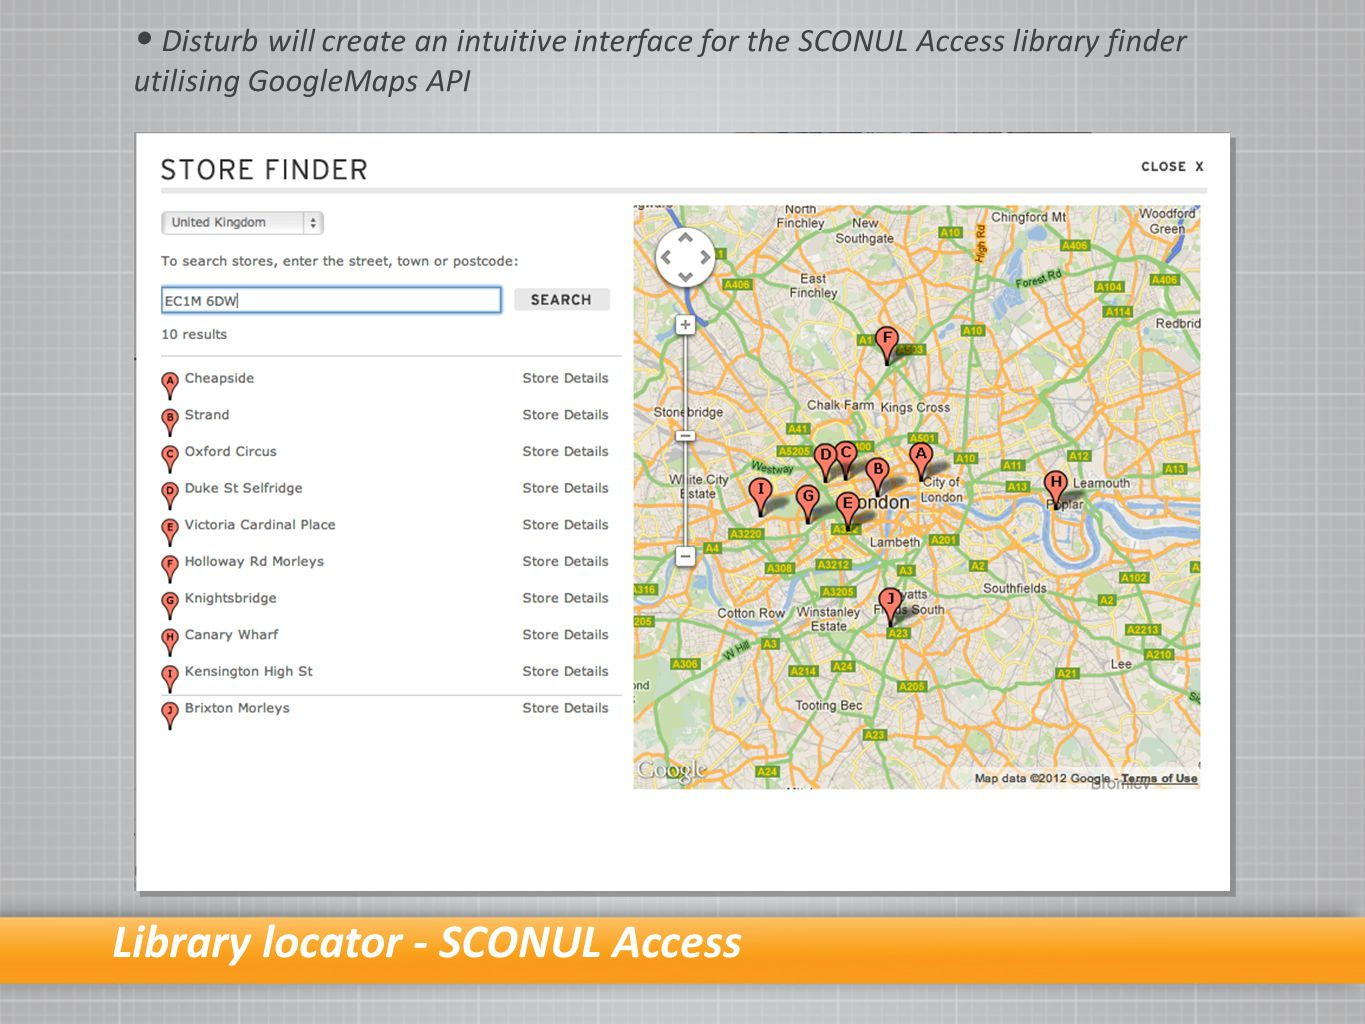 Library locator - SCONUL Access Disturb will create an intuitive interface for the SCONUL Access library finder utilising GoogleMaps API